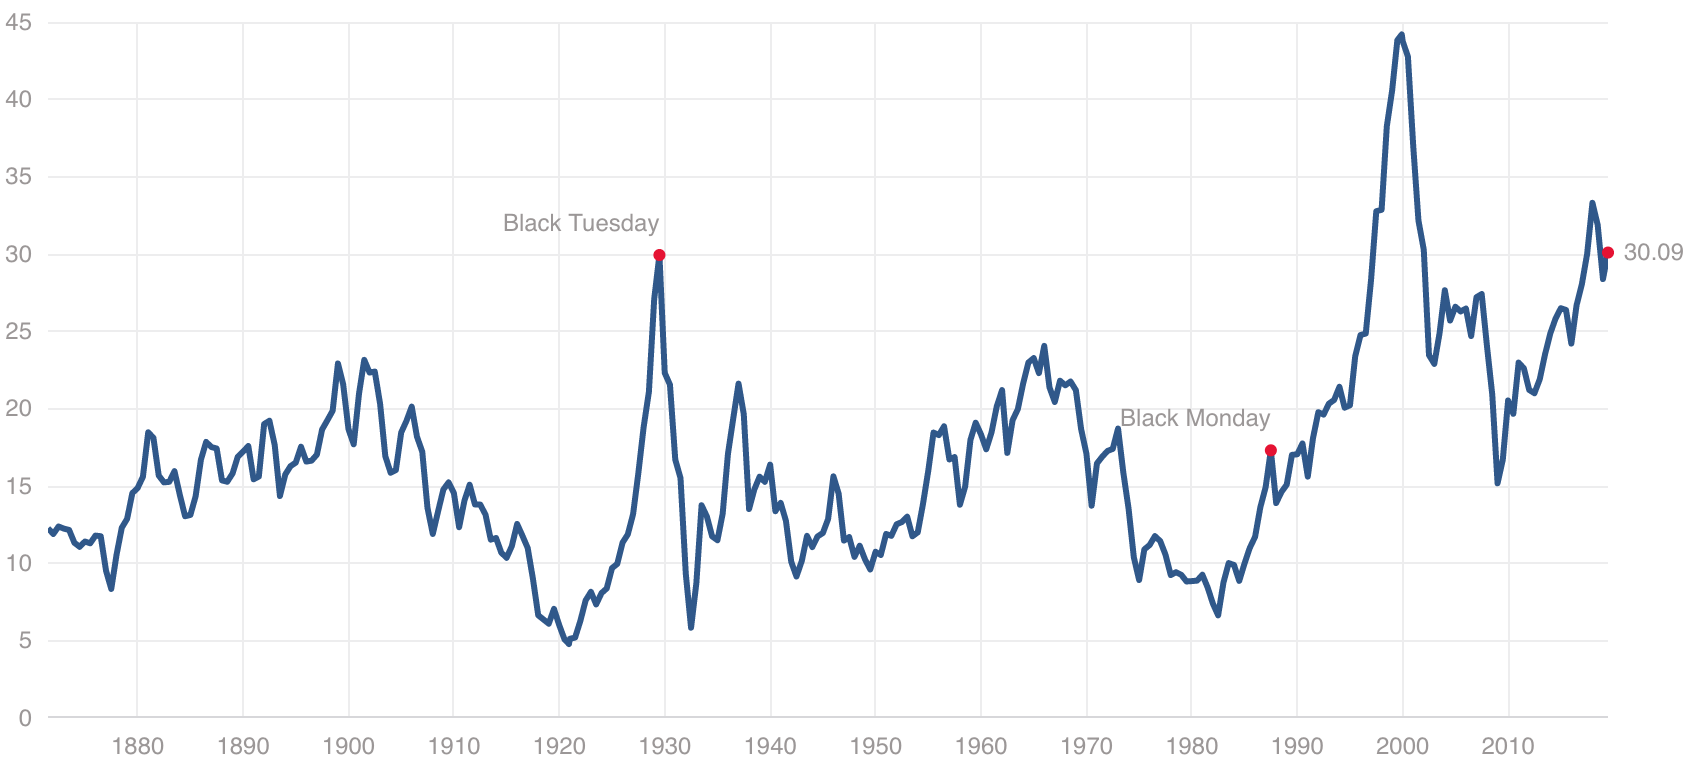 Shiller P/E Ratio 2019